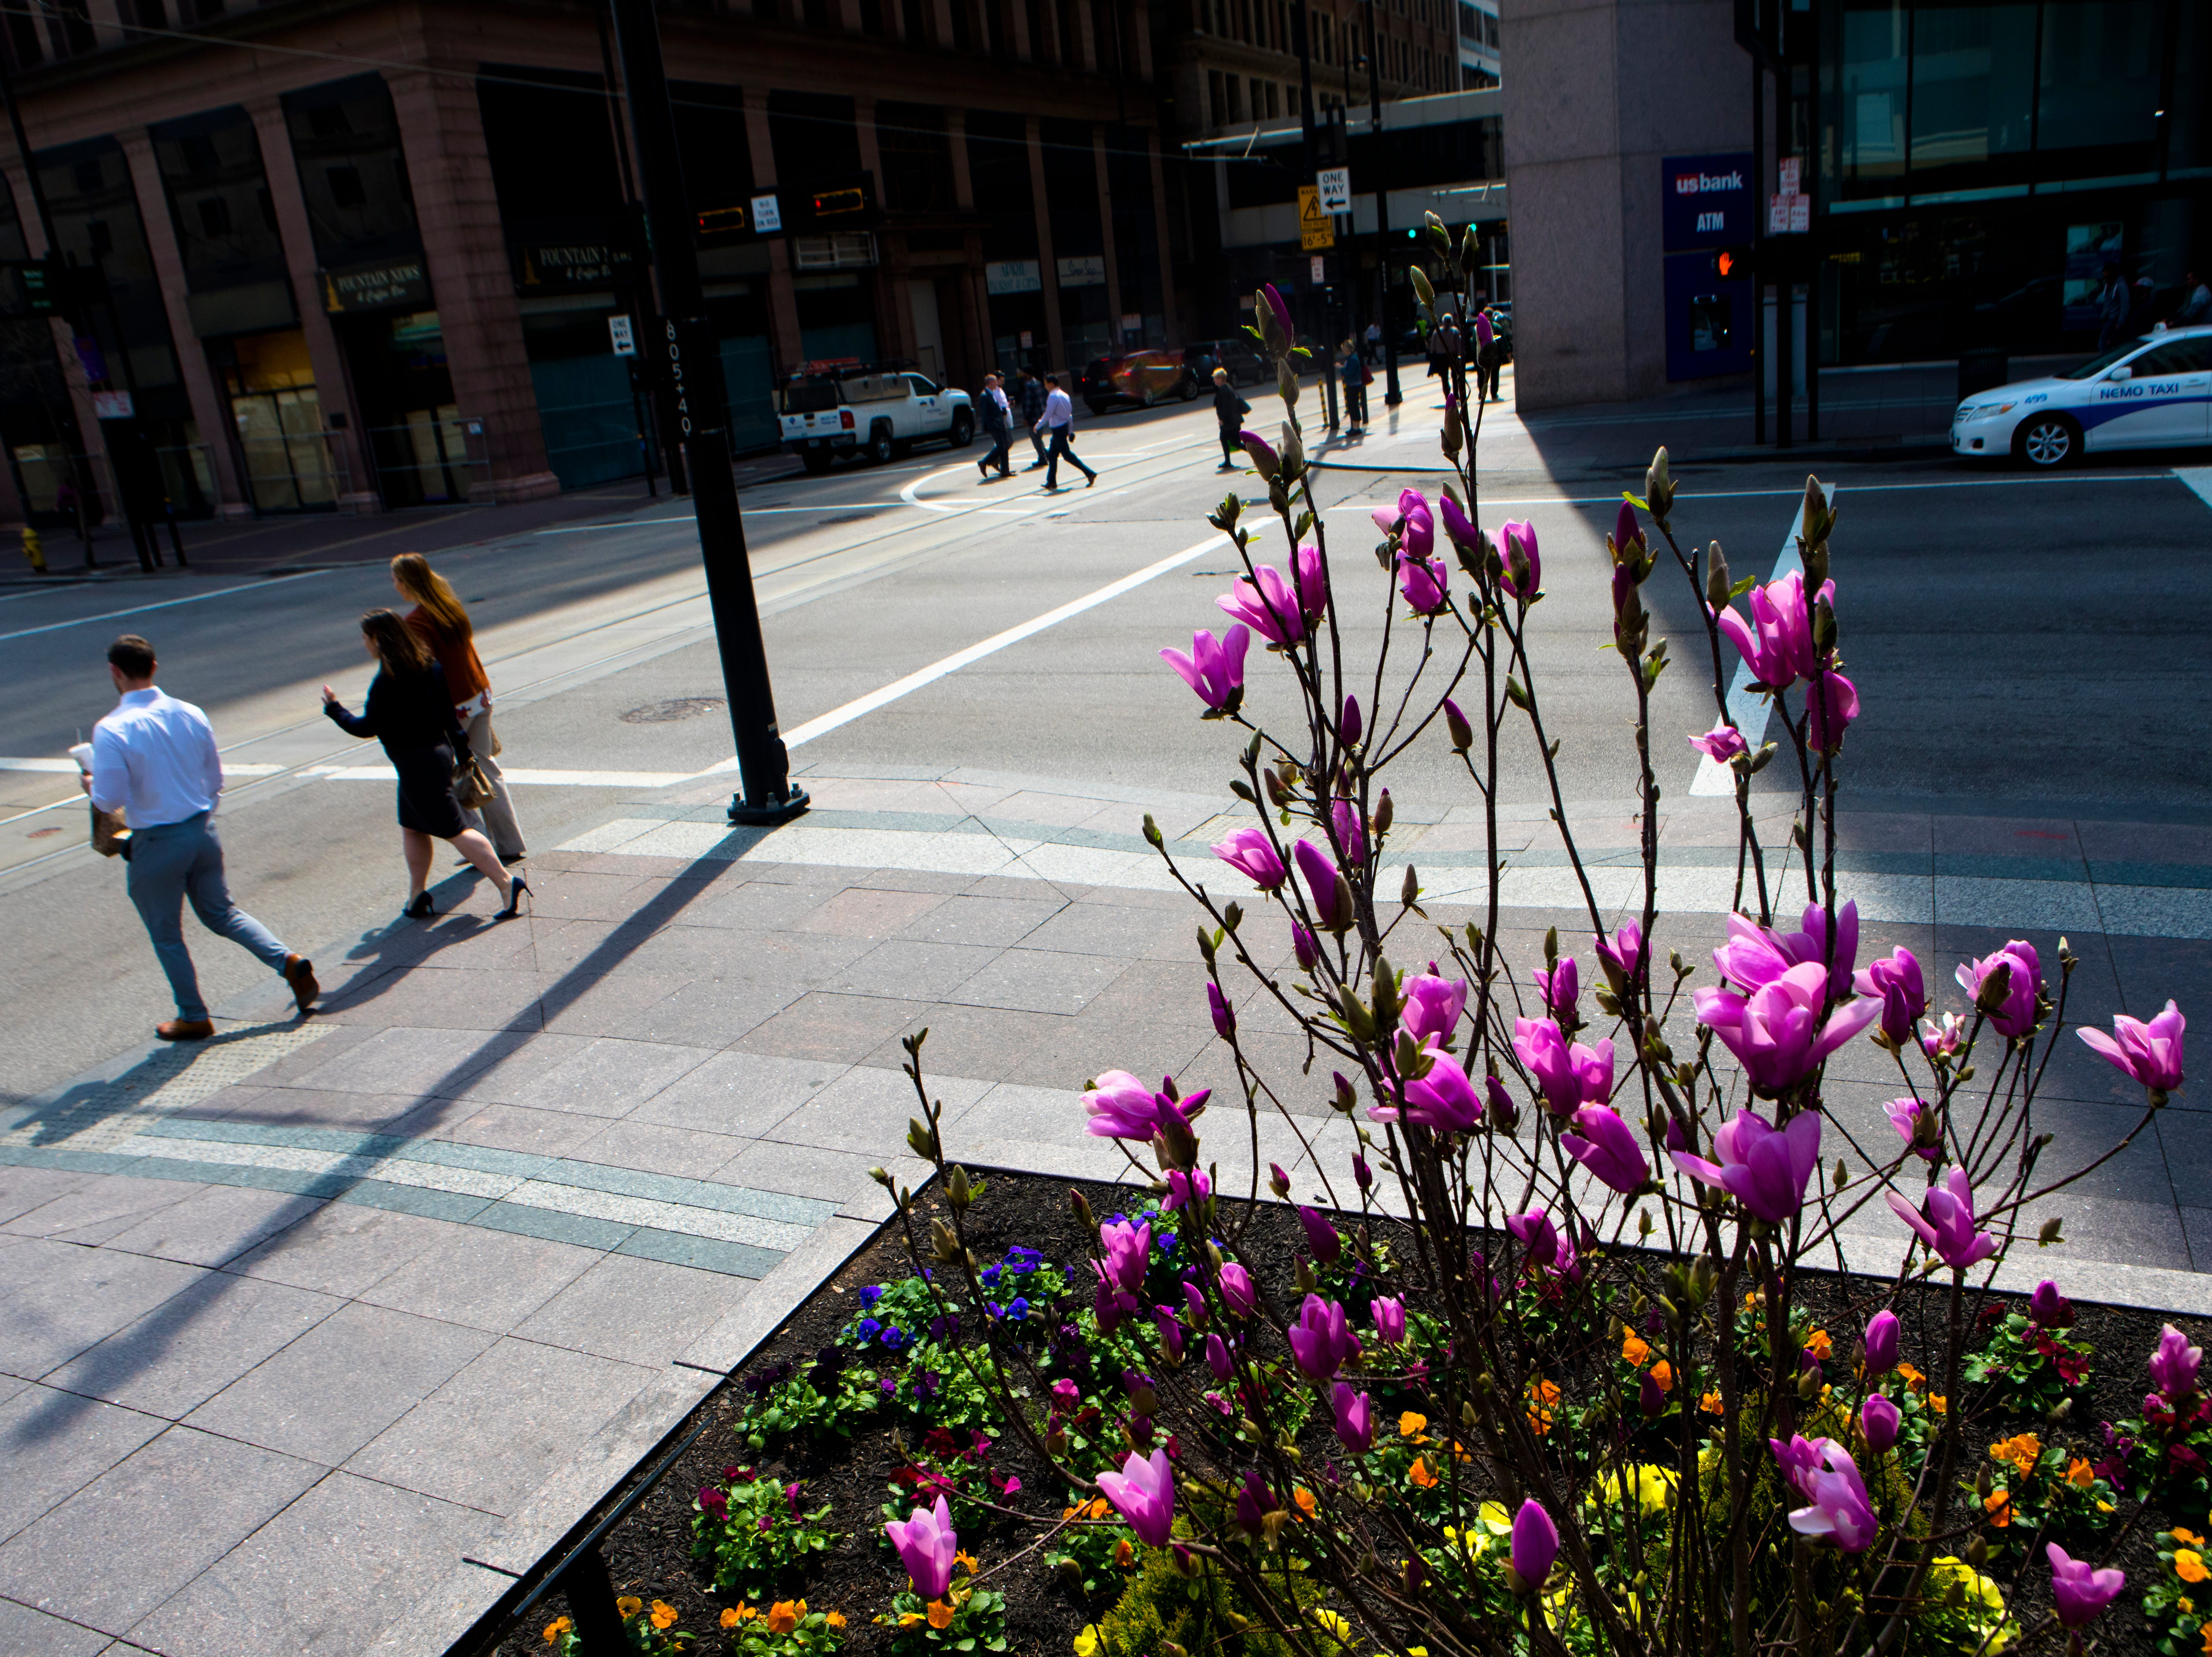 People walk past a blooming magnolia at Fountain Square in Cincinnati on Wednesday, April 10, 2019.